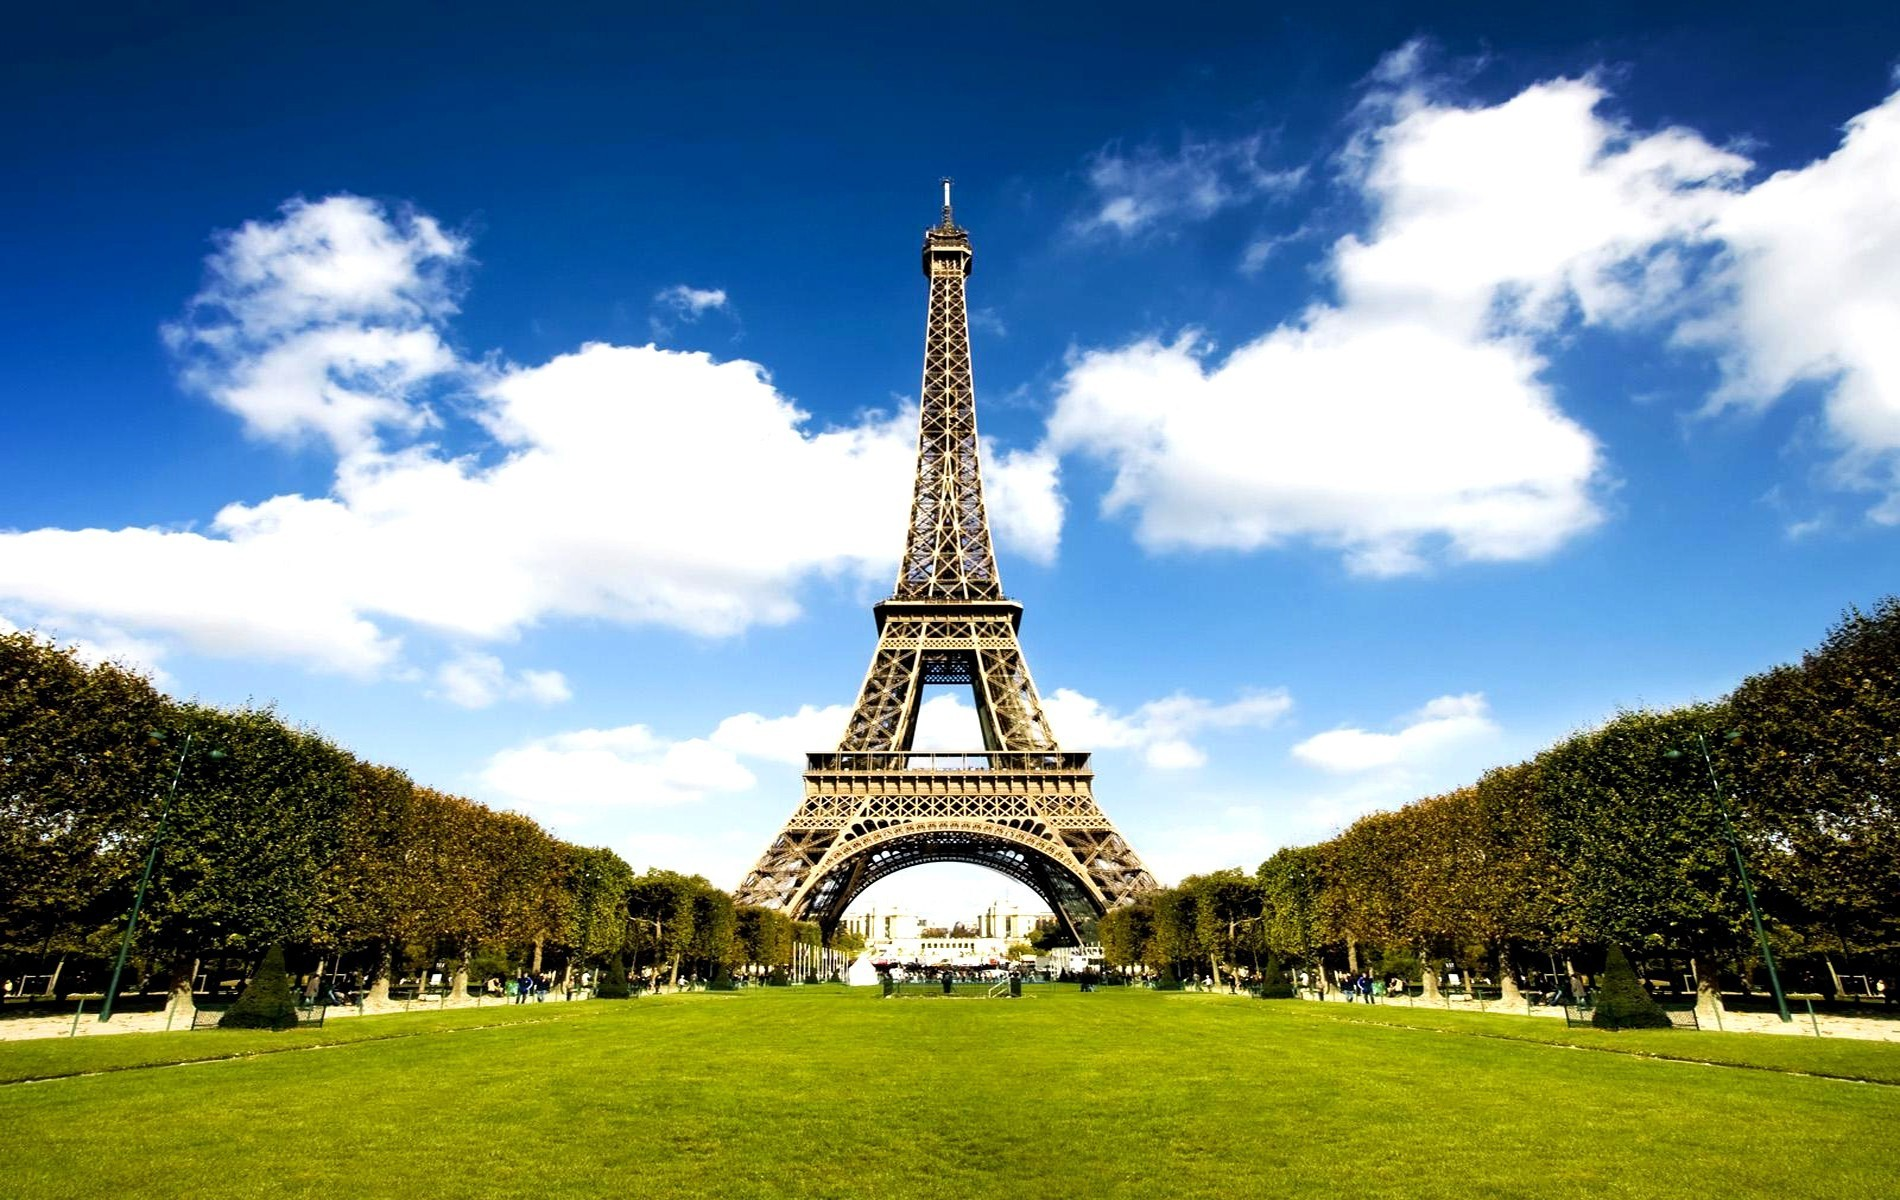 Eiffel Tower Hd Wallpaper Collection For Free Download